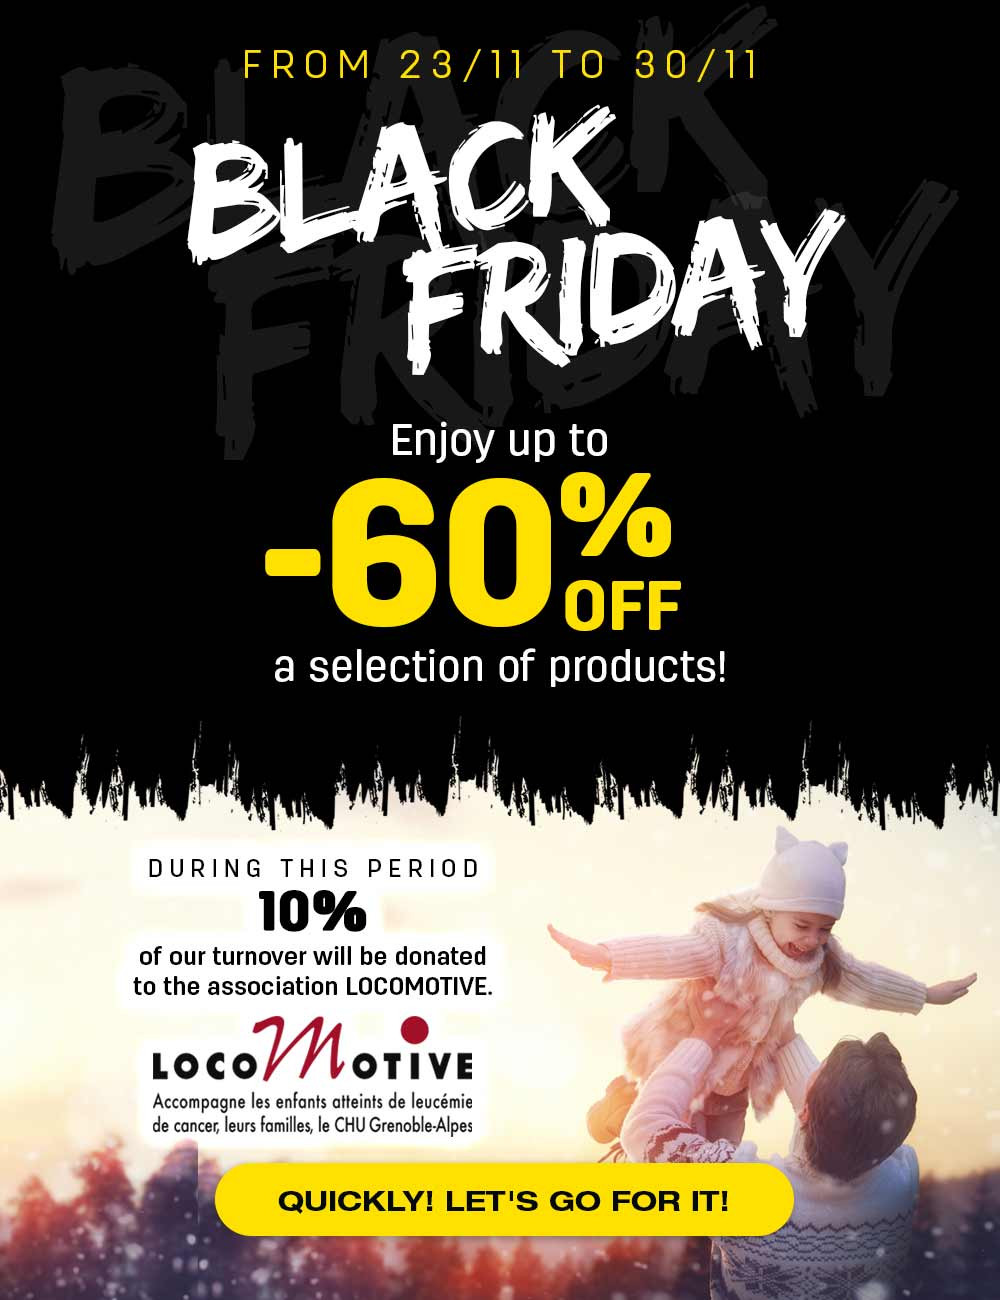 Black Friday 2020, enjoy up to 60% off on a selection of products and 10% of our turnover will be donated to the association LOCOMOTIVE